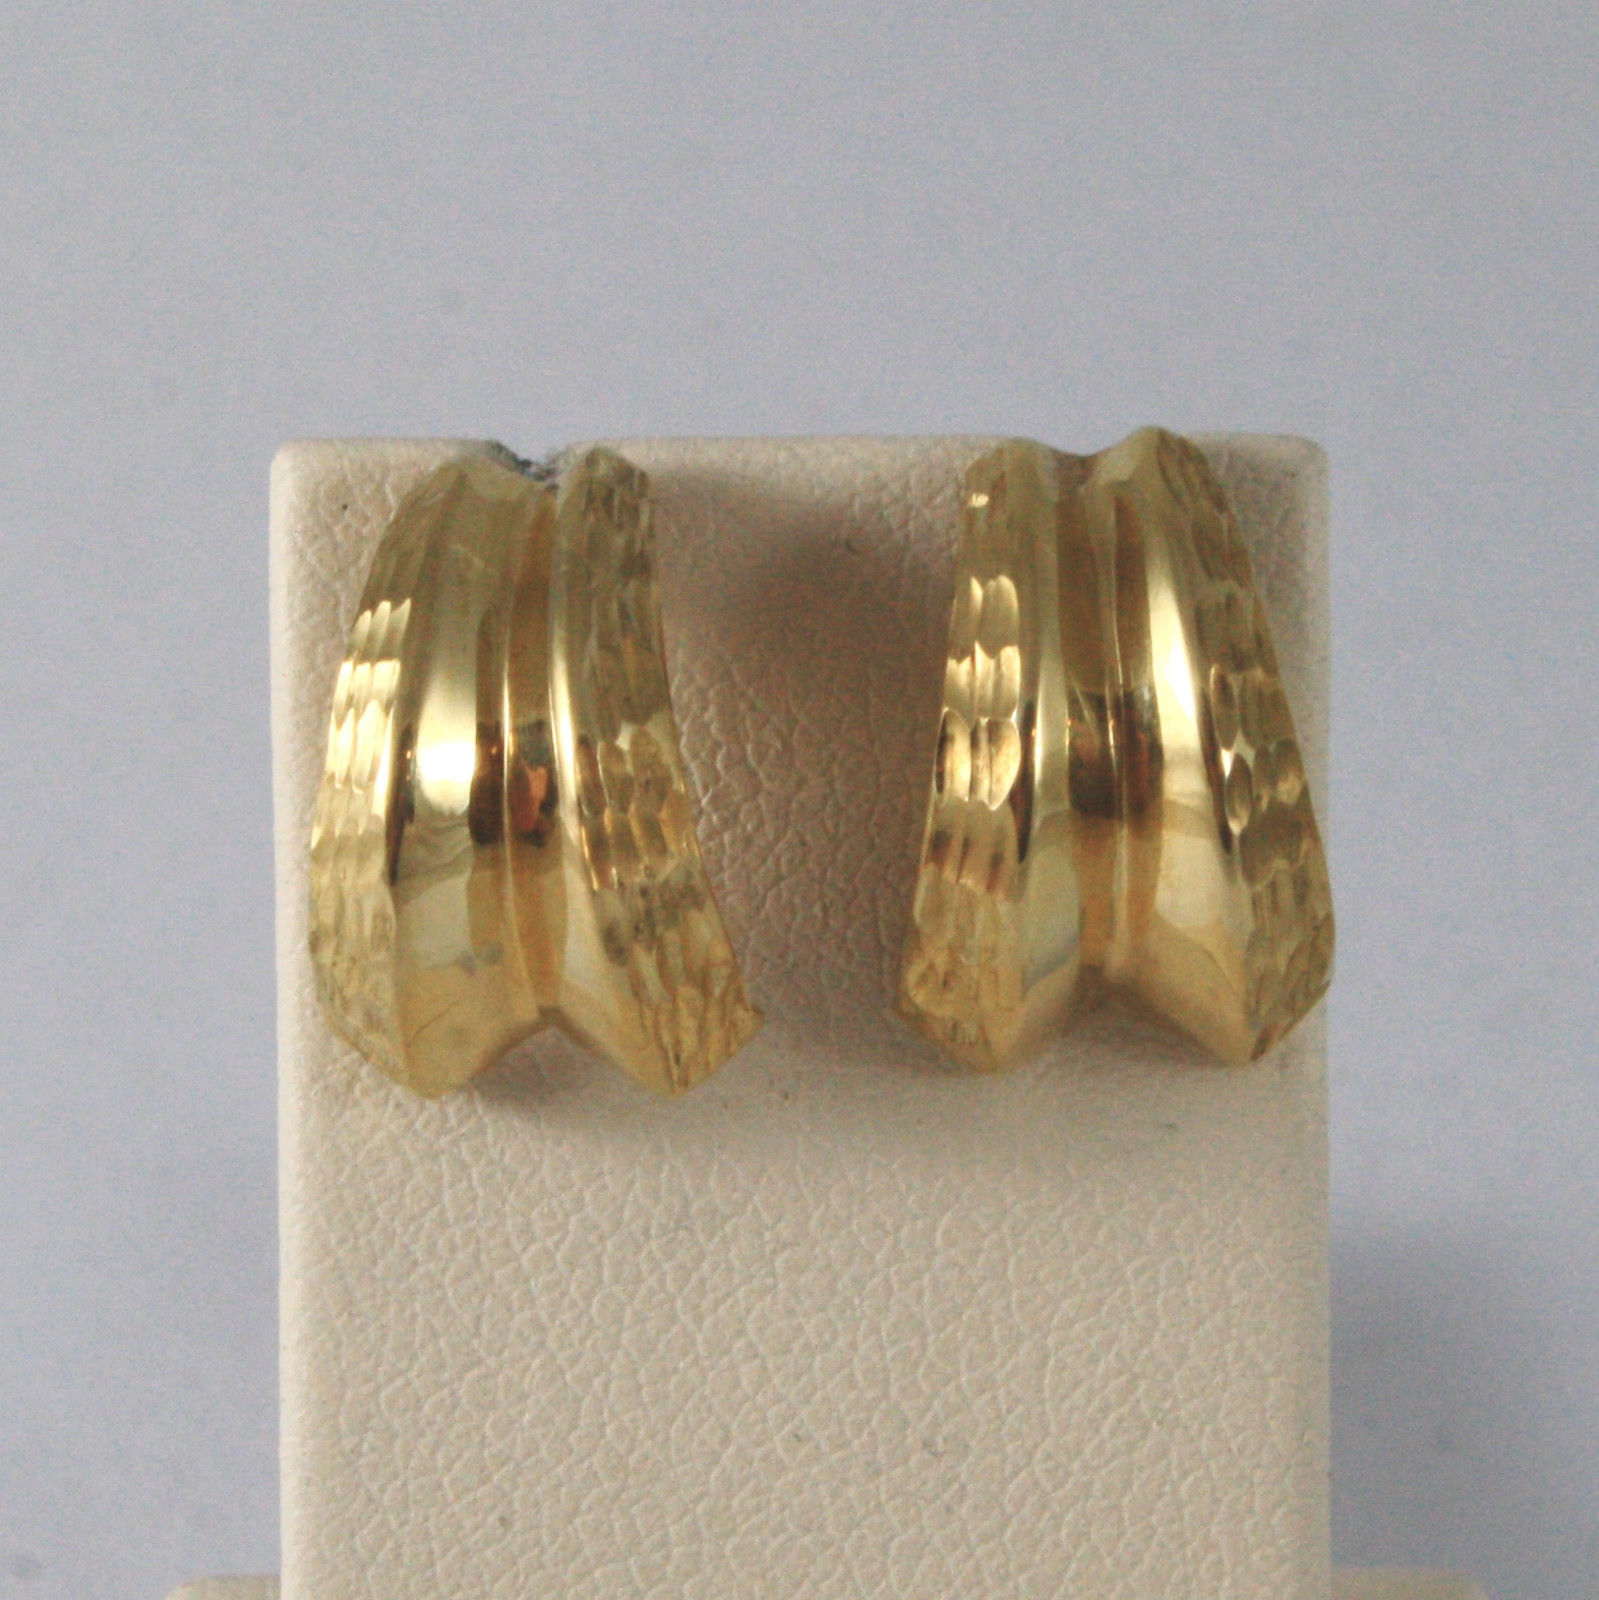 SOLID 18KT. YELLOW GOLD SEMICIRCLES WORKED EARRINGS MADE IN ITALY 18K